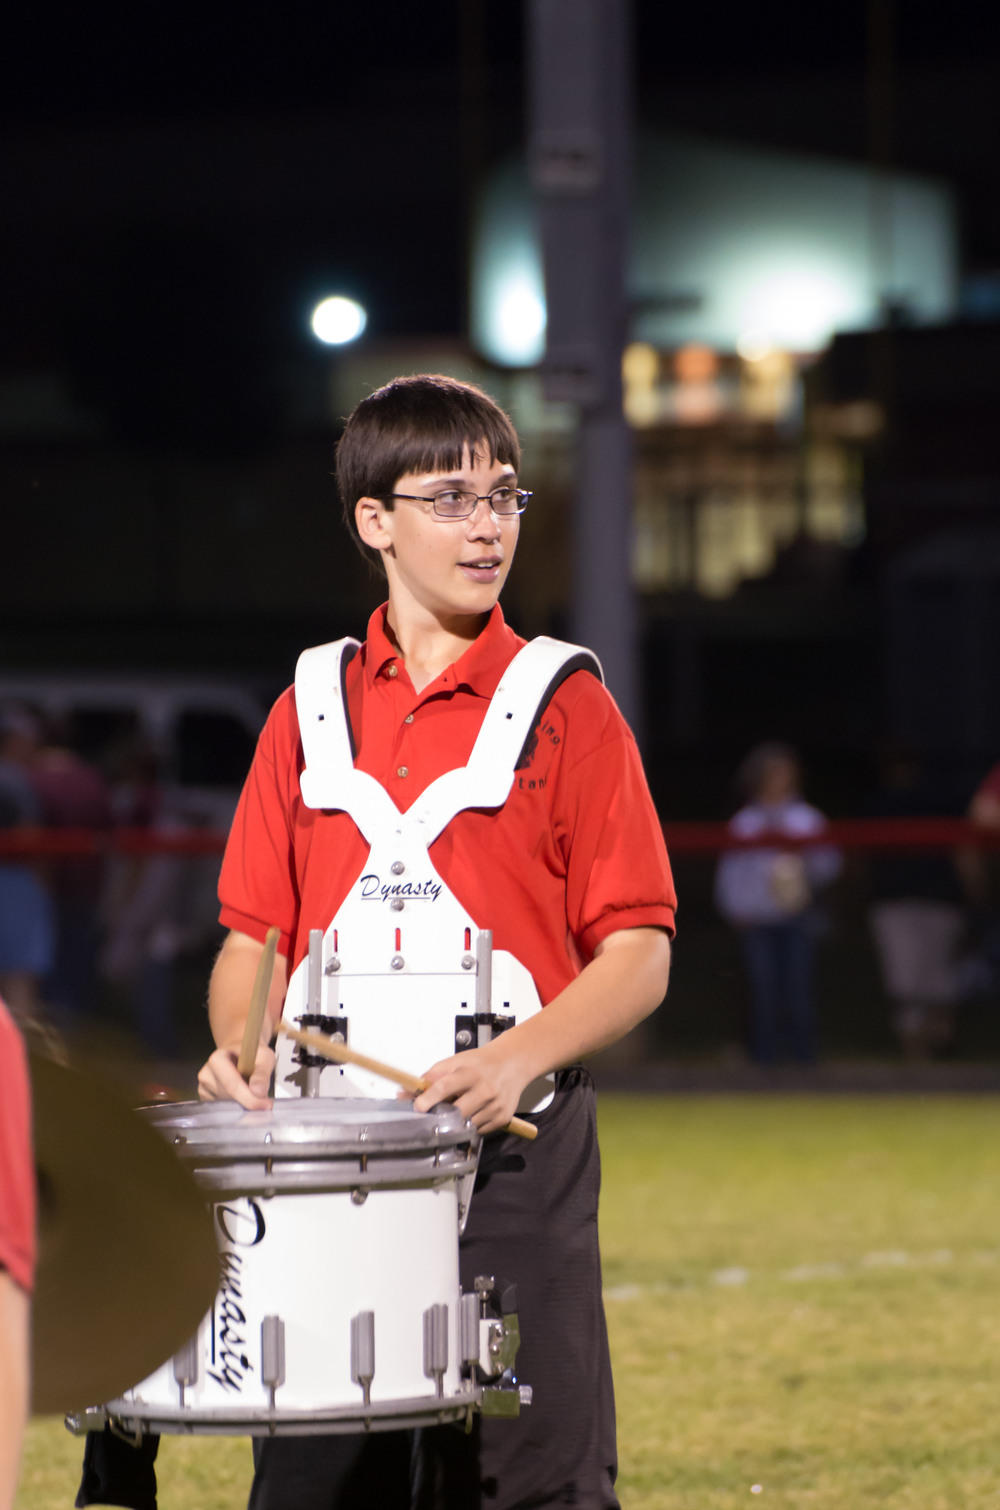 2014-08-28 Football Game - click to view the entire gallery